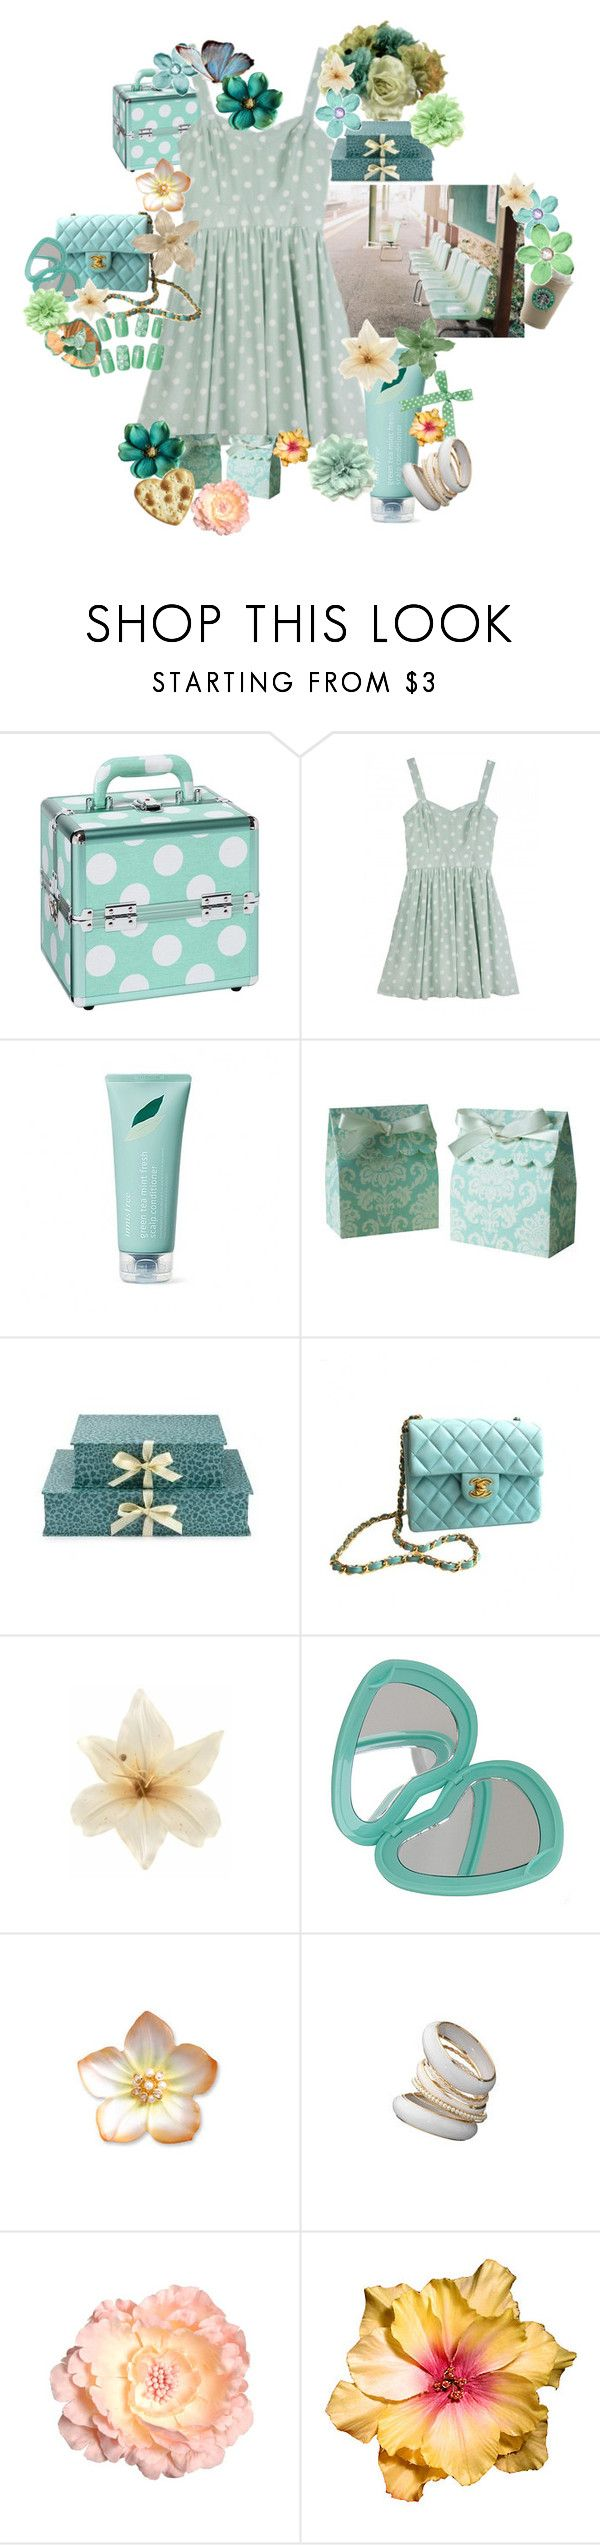 """Untitled #403"" by shanghai2 ❤ liked on Polyvore featuring beauty, PBteen, MINKPINK, Innisfree, Nina Campbell, Chanel, Dahlia, AND 1, Clips and Forever 21"